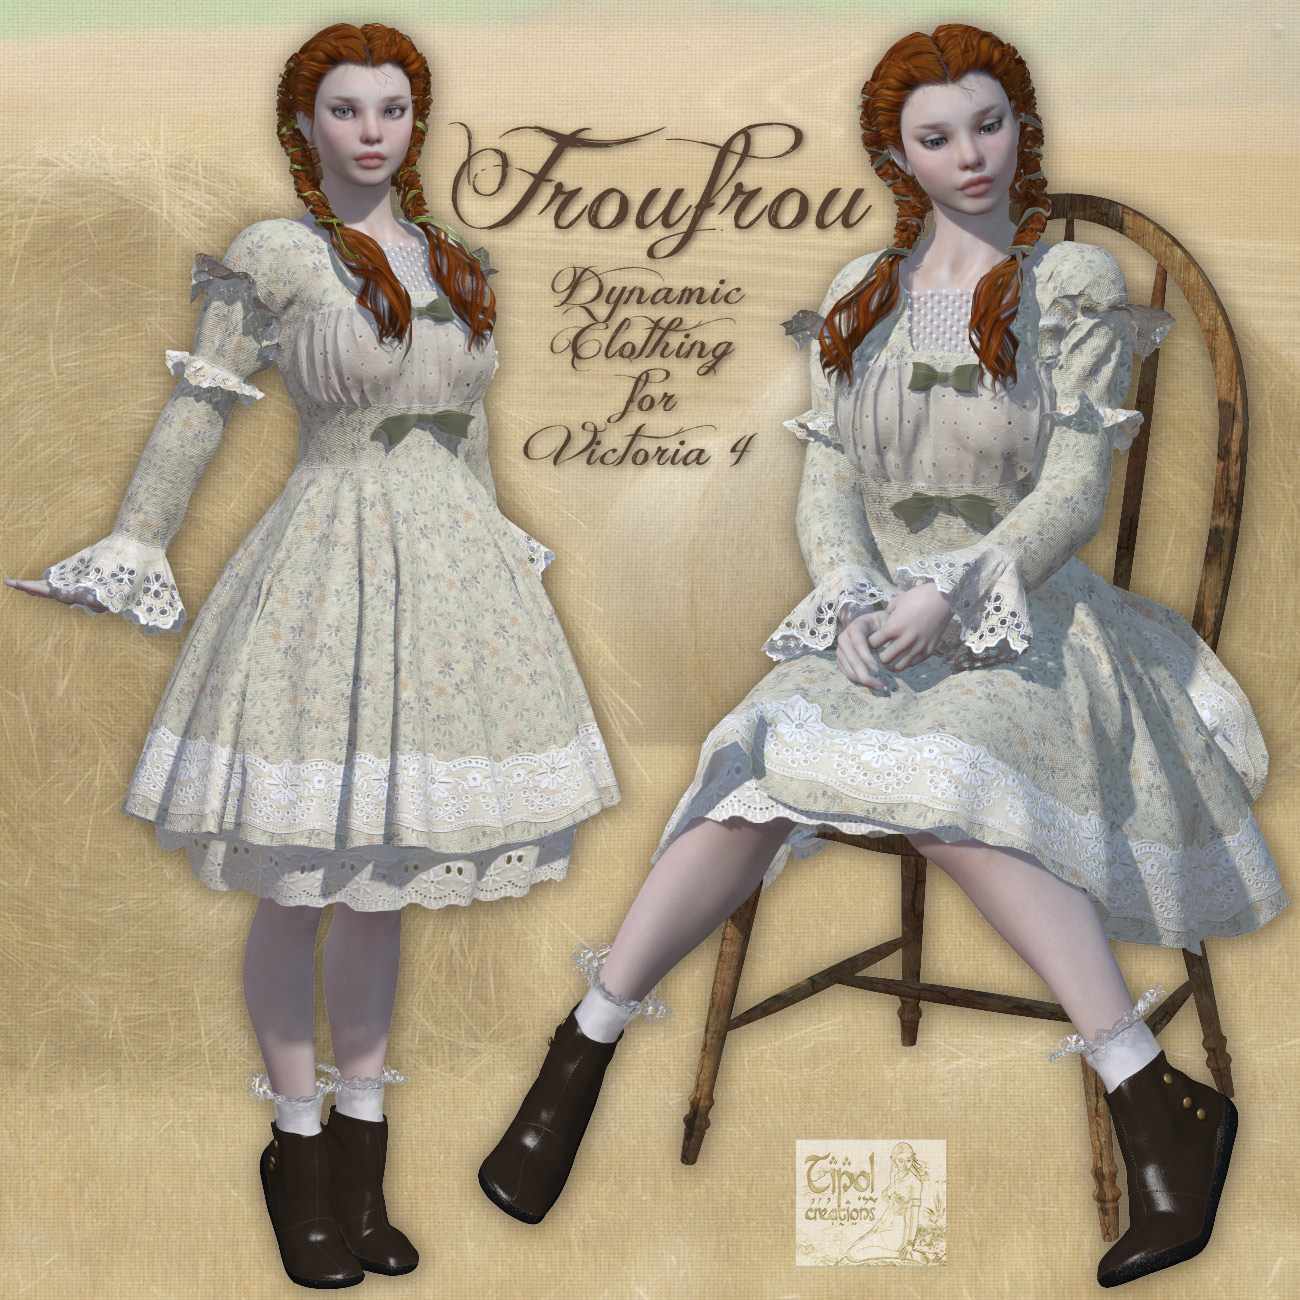 Froufrou_Dynamic Clothing for Victoria 4